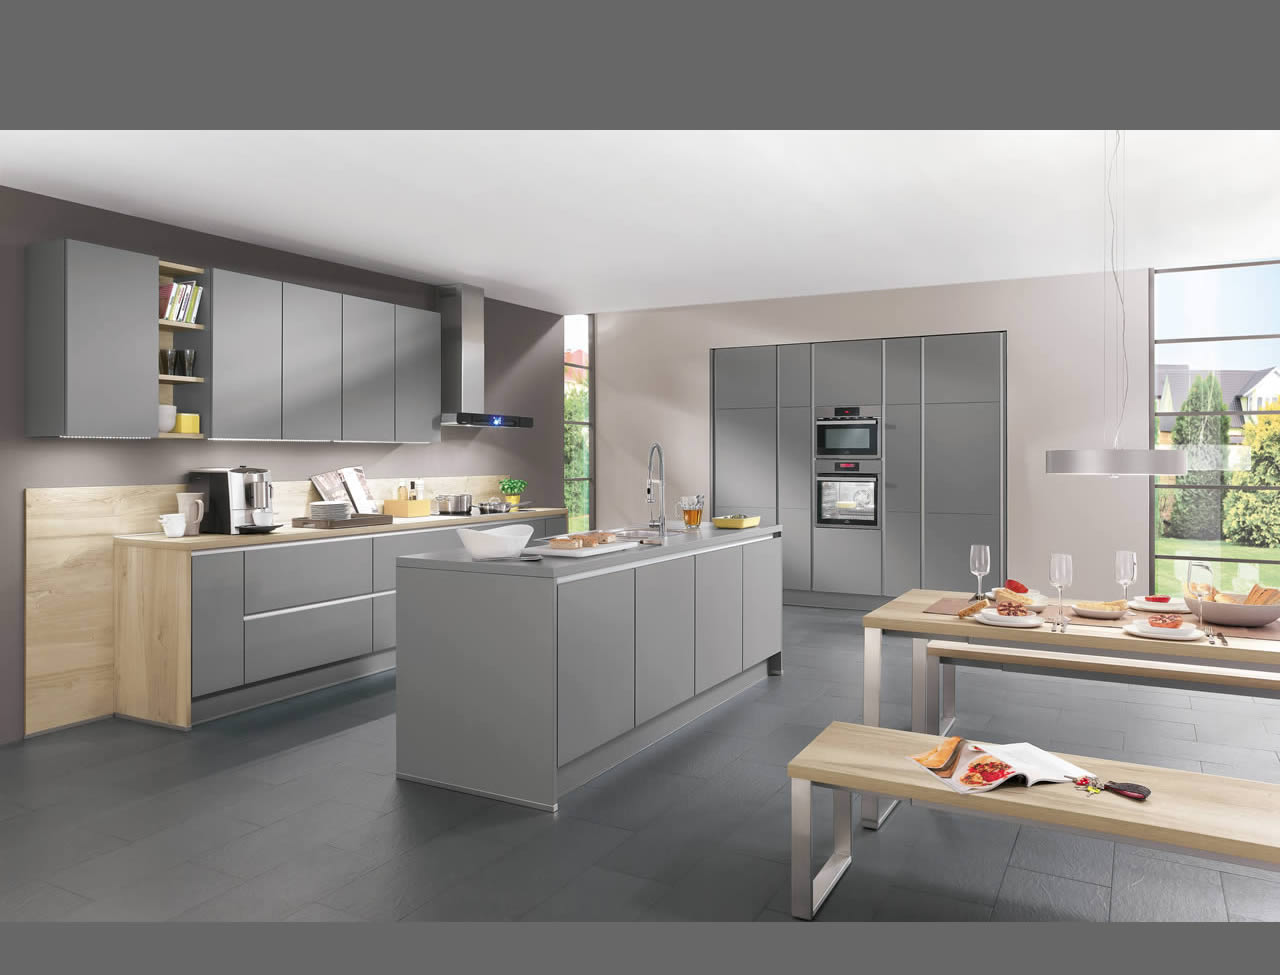 Nobilia Riva I Home Kitchens Nobilia Kitchens German Kitchens Line N